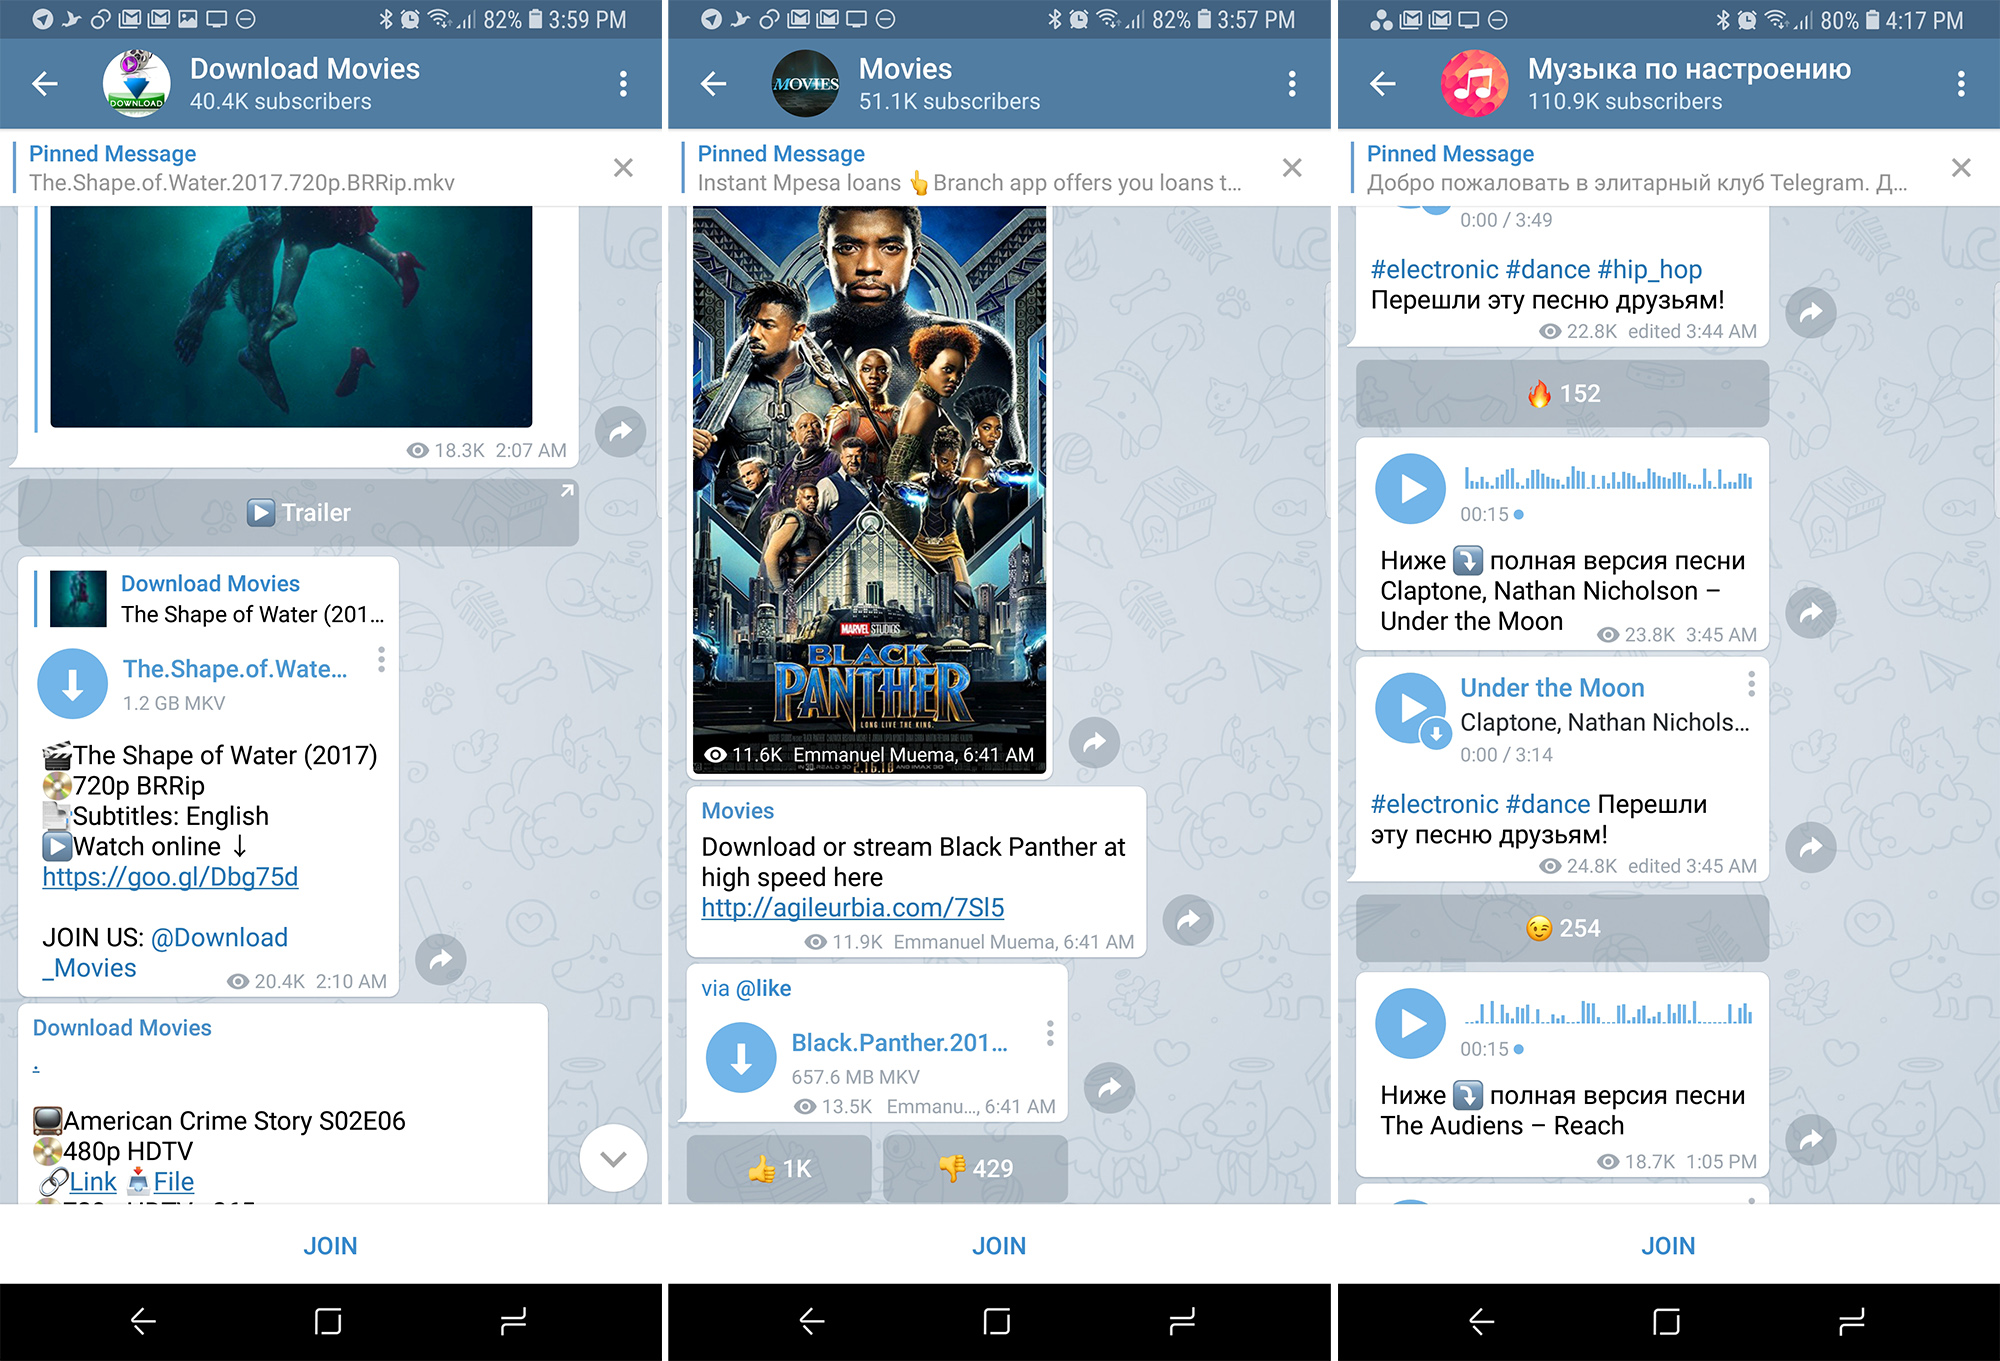 Telegram movie download 2018 app | Telegram Movies Group